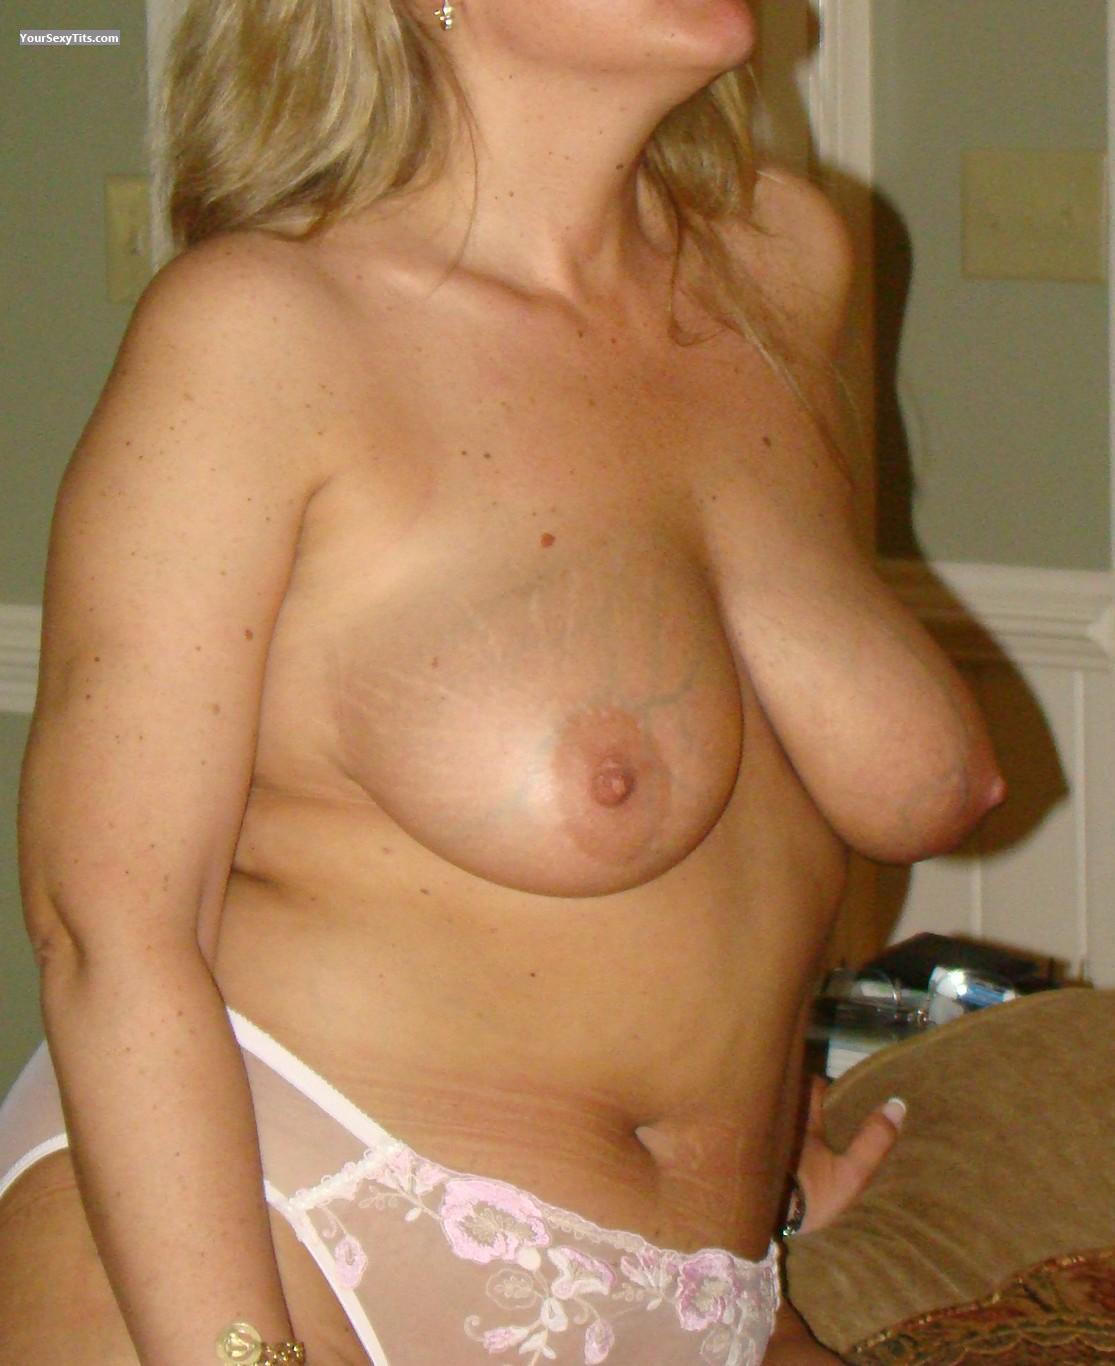 Tit Flash: Big Tits - Myblondewife from United States